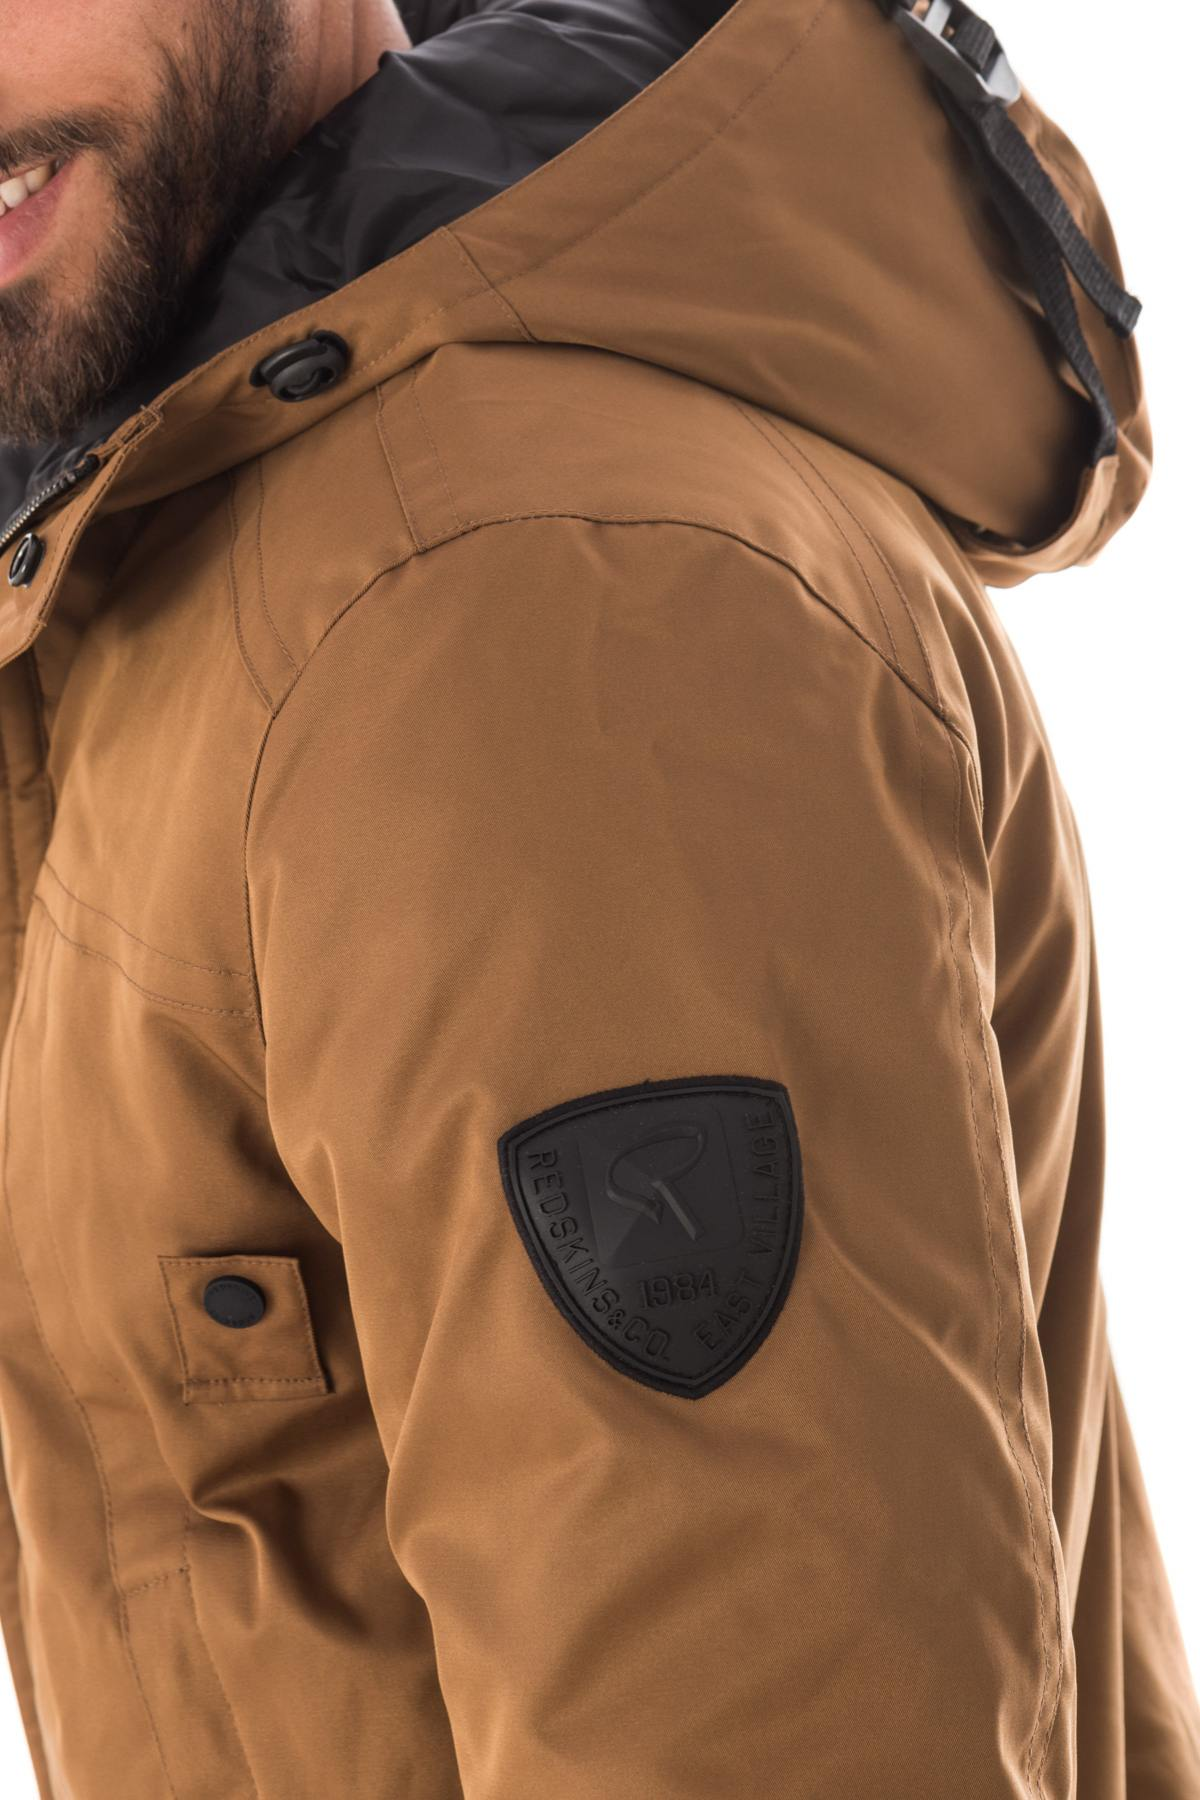 Elmer Hypnose Redskins Camel H16 Blouson Homme Cuir wPukXZiTO